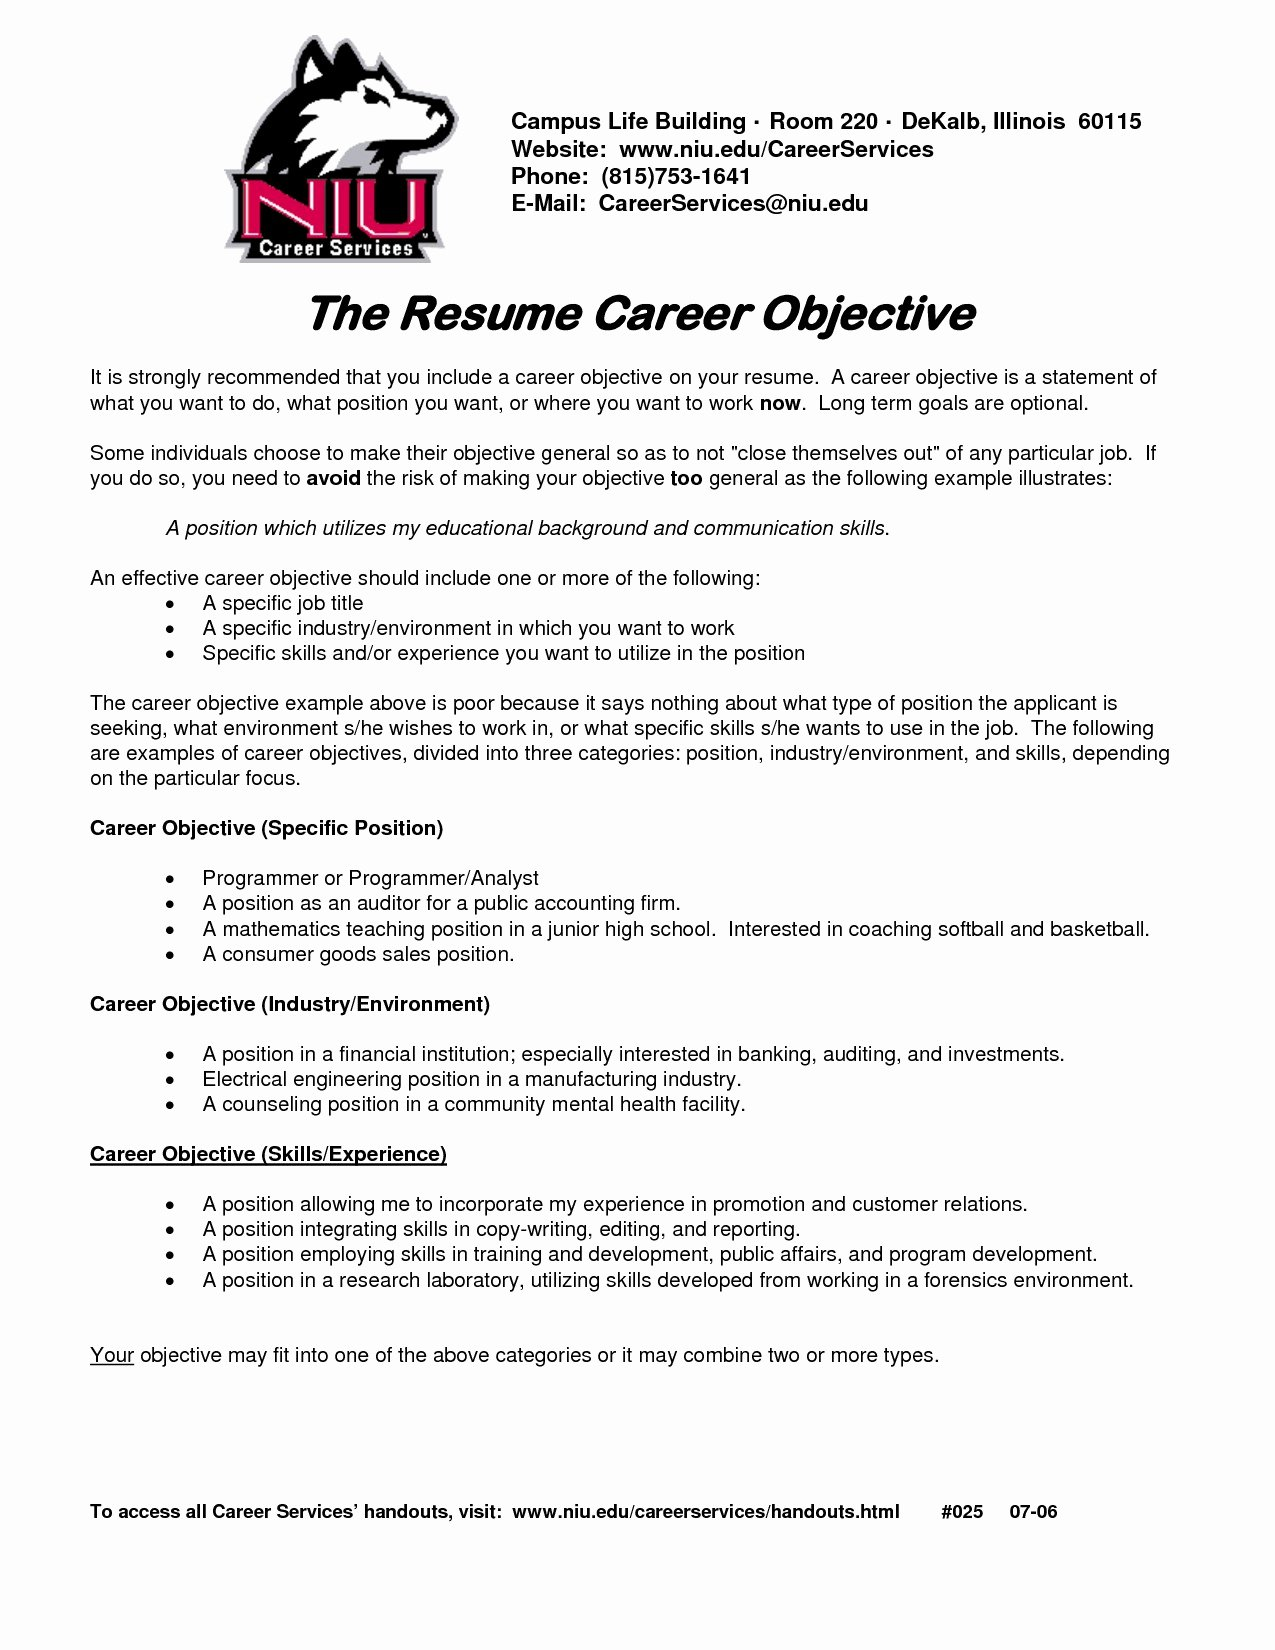 Resume for Campus Jobs Job Resume Objective